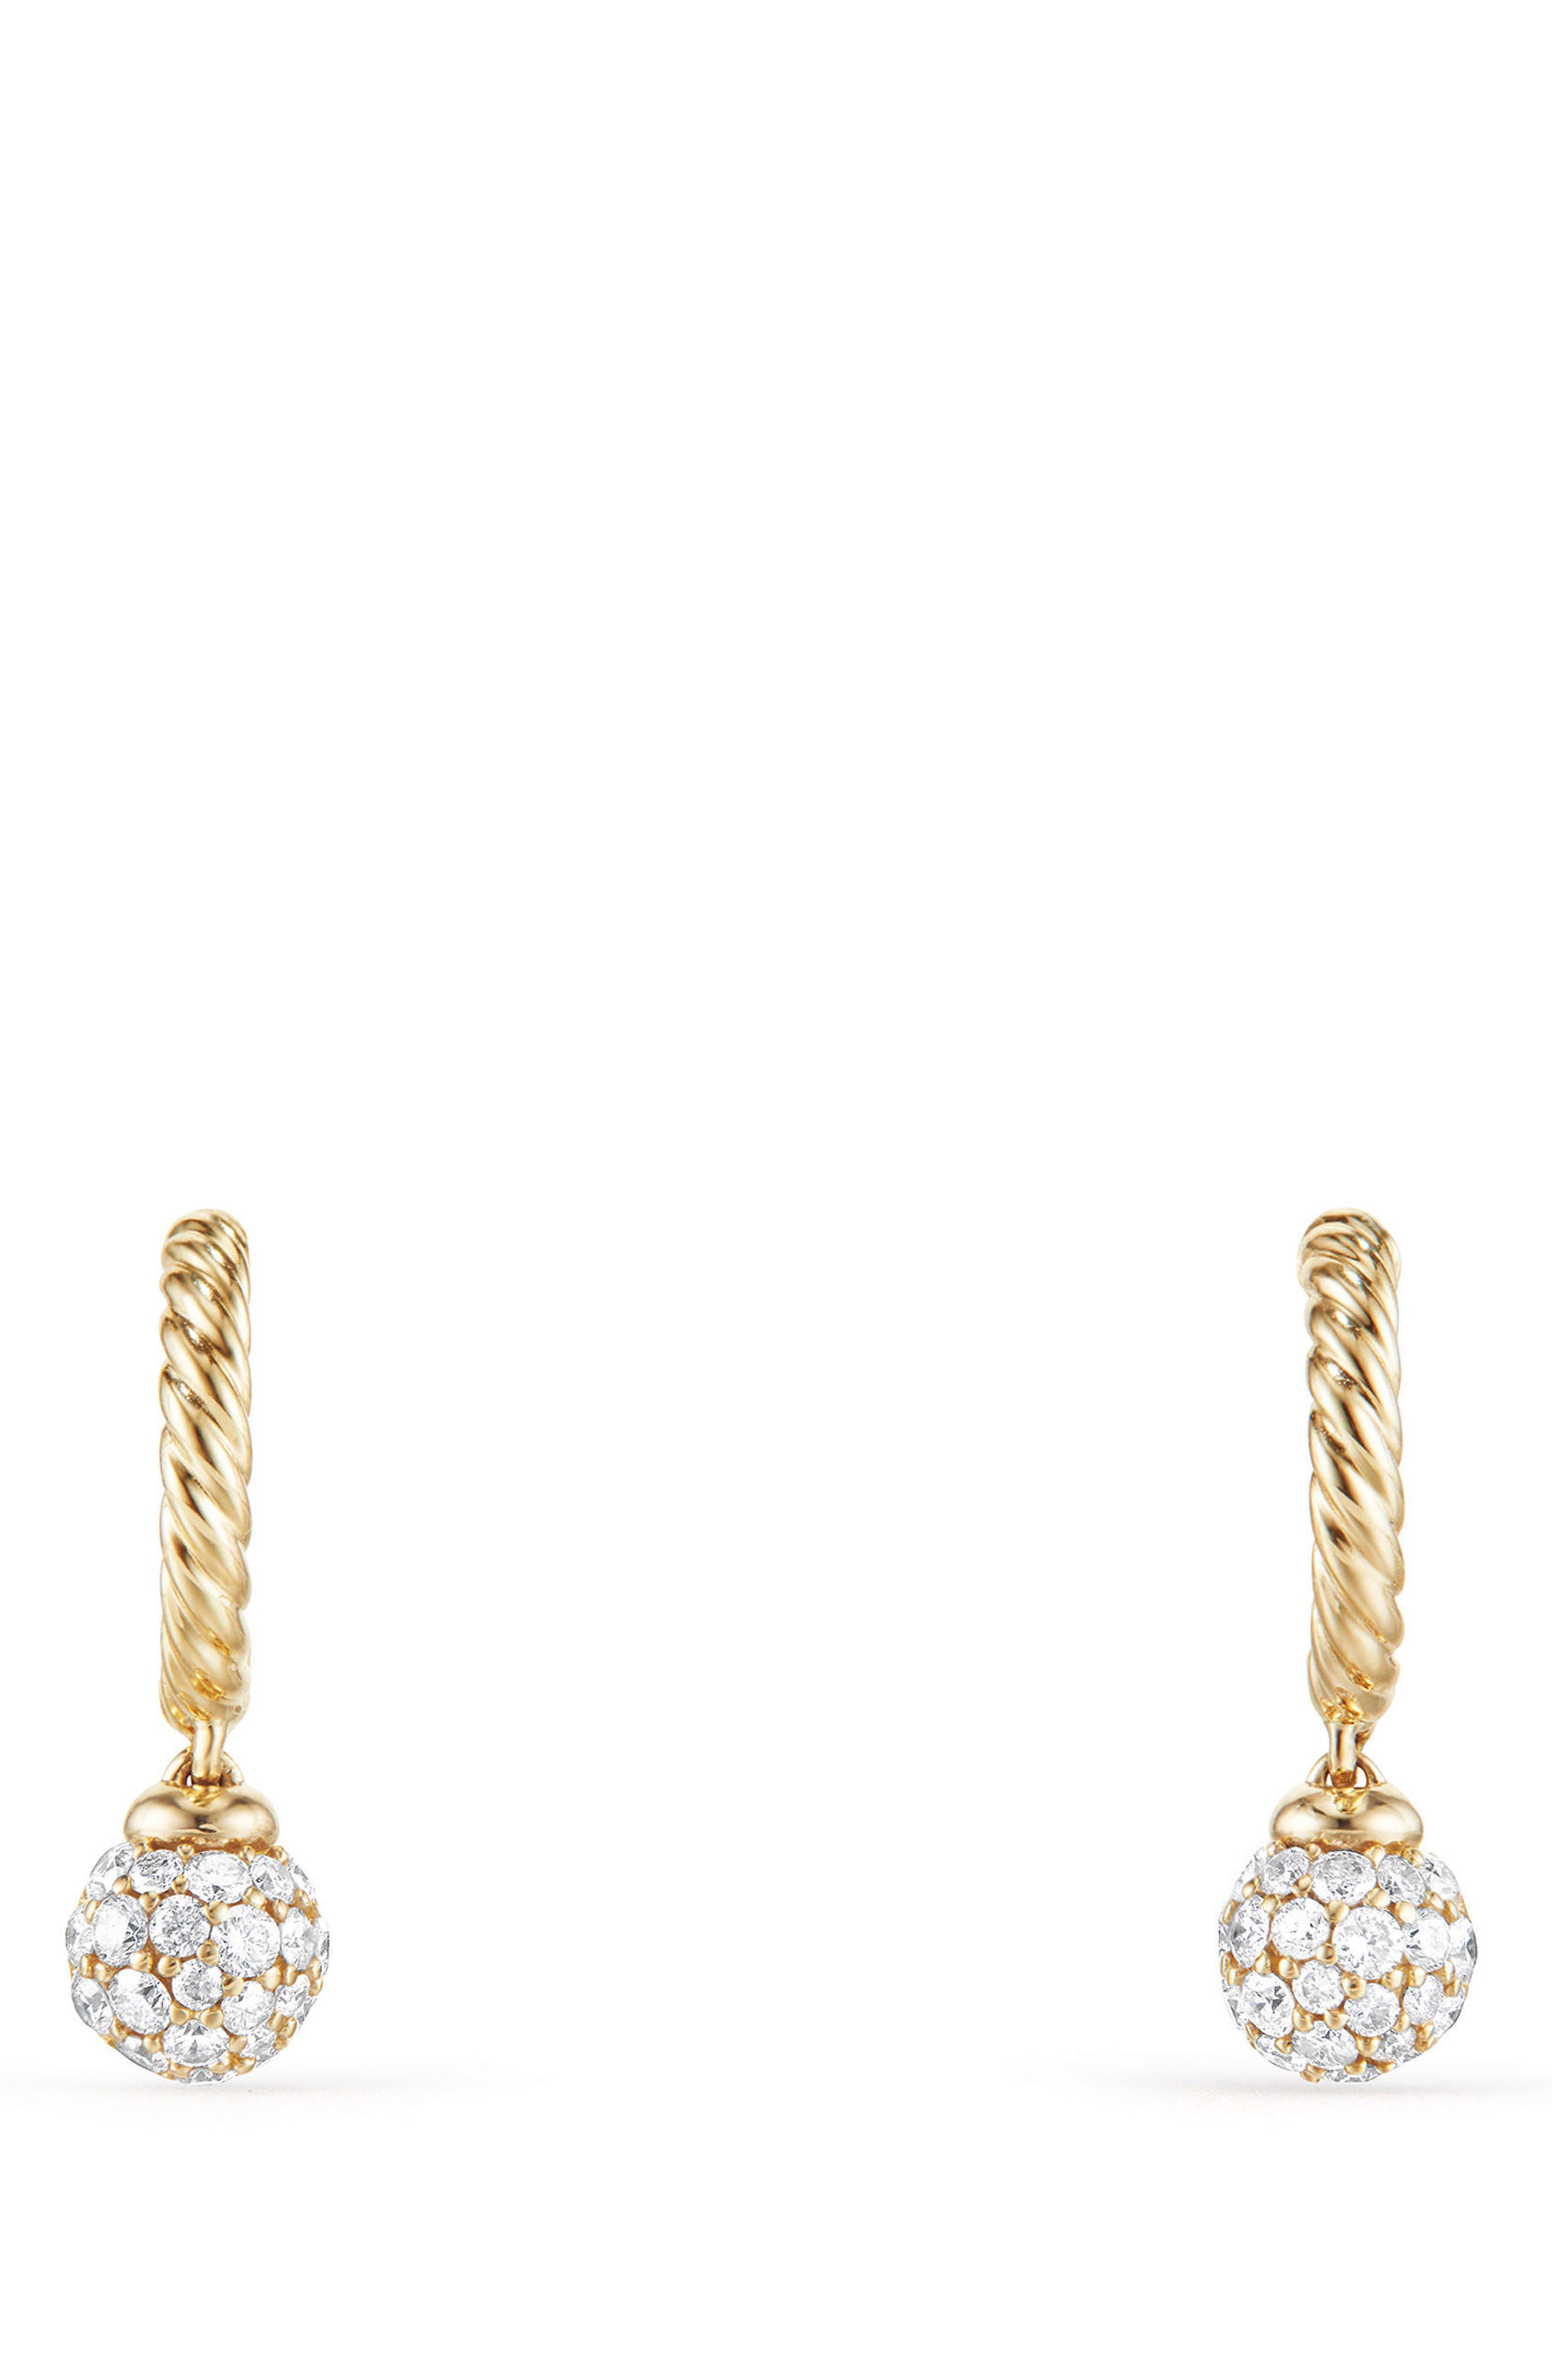 Petite Solari Hoop Pavé Earrings with Diamonds in 18K Gold,                             Alternate thumbnail 2, color,                             Yellow Gold/ Diamond